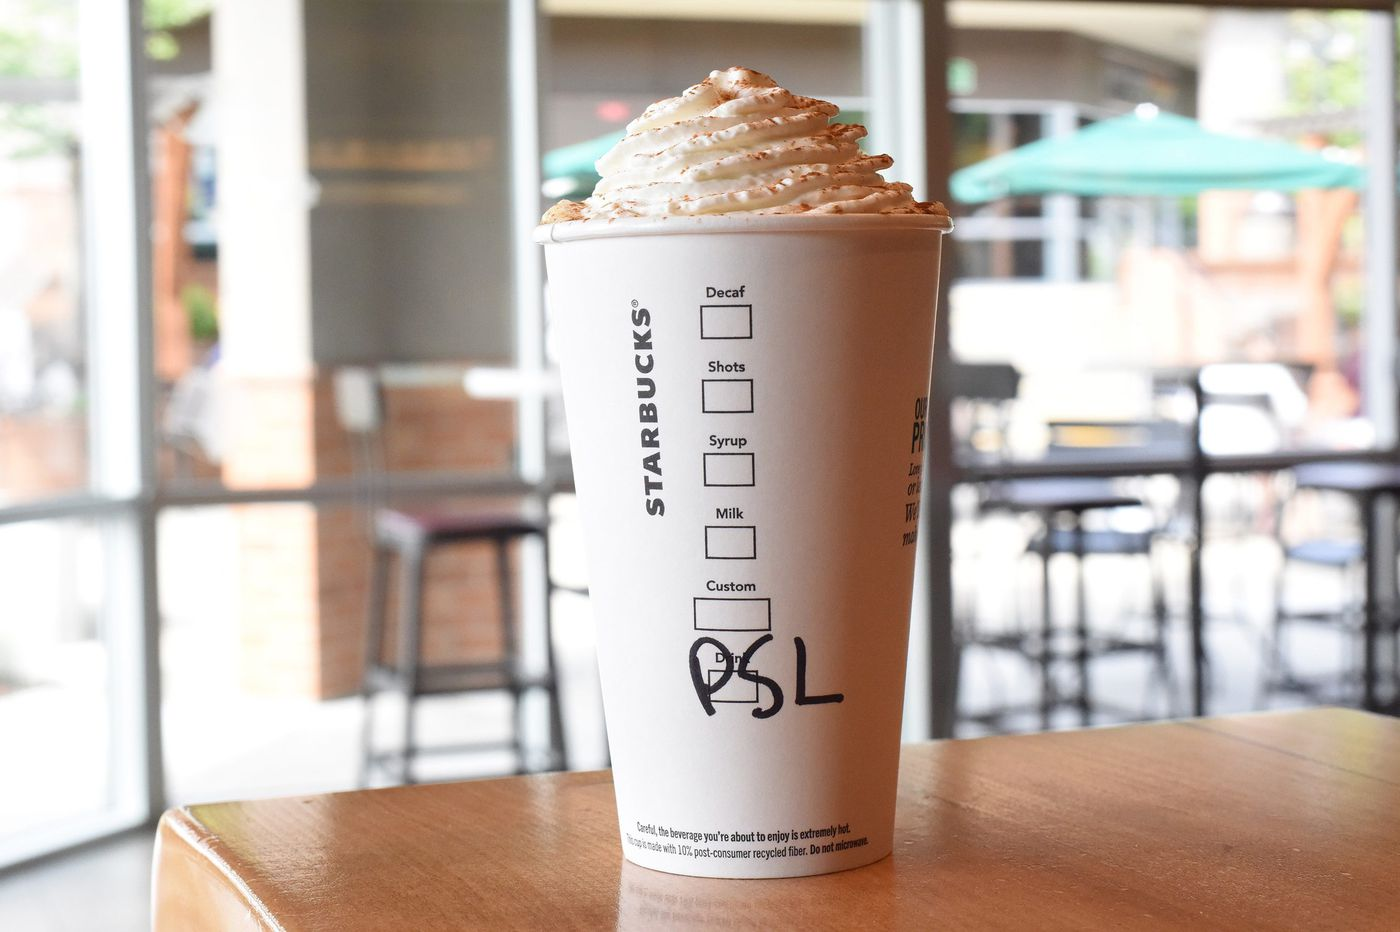 Why Starbucks' pumpkin spice latte sells, despite the online shame (and 90-degree weather)